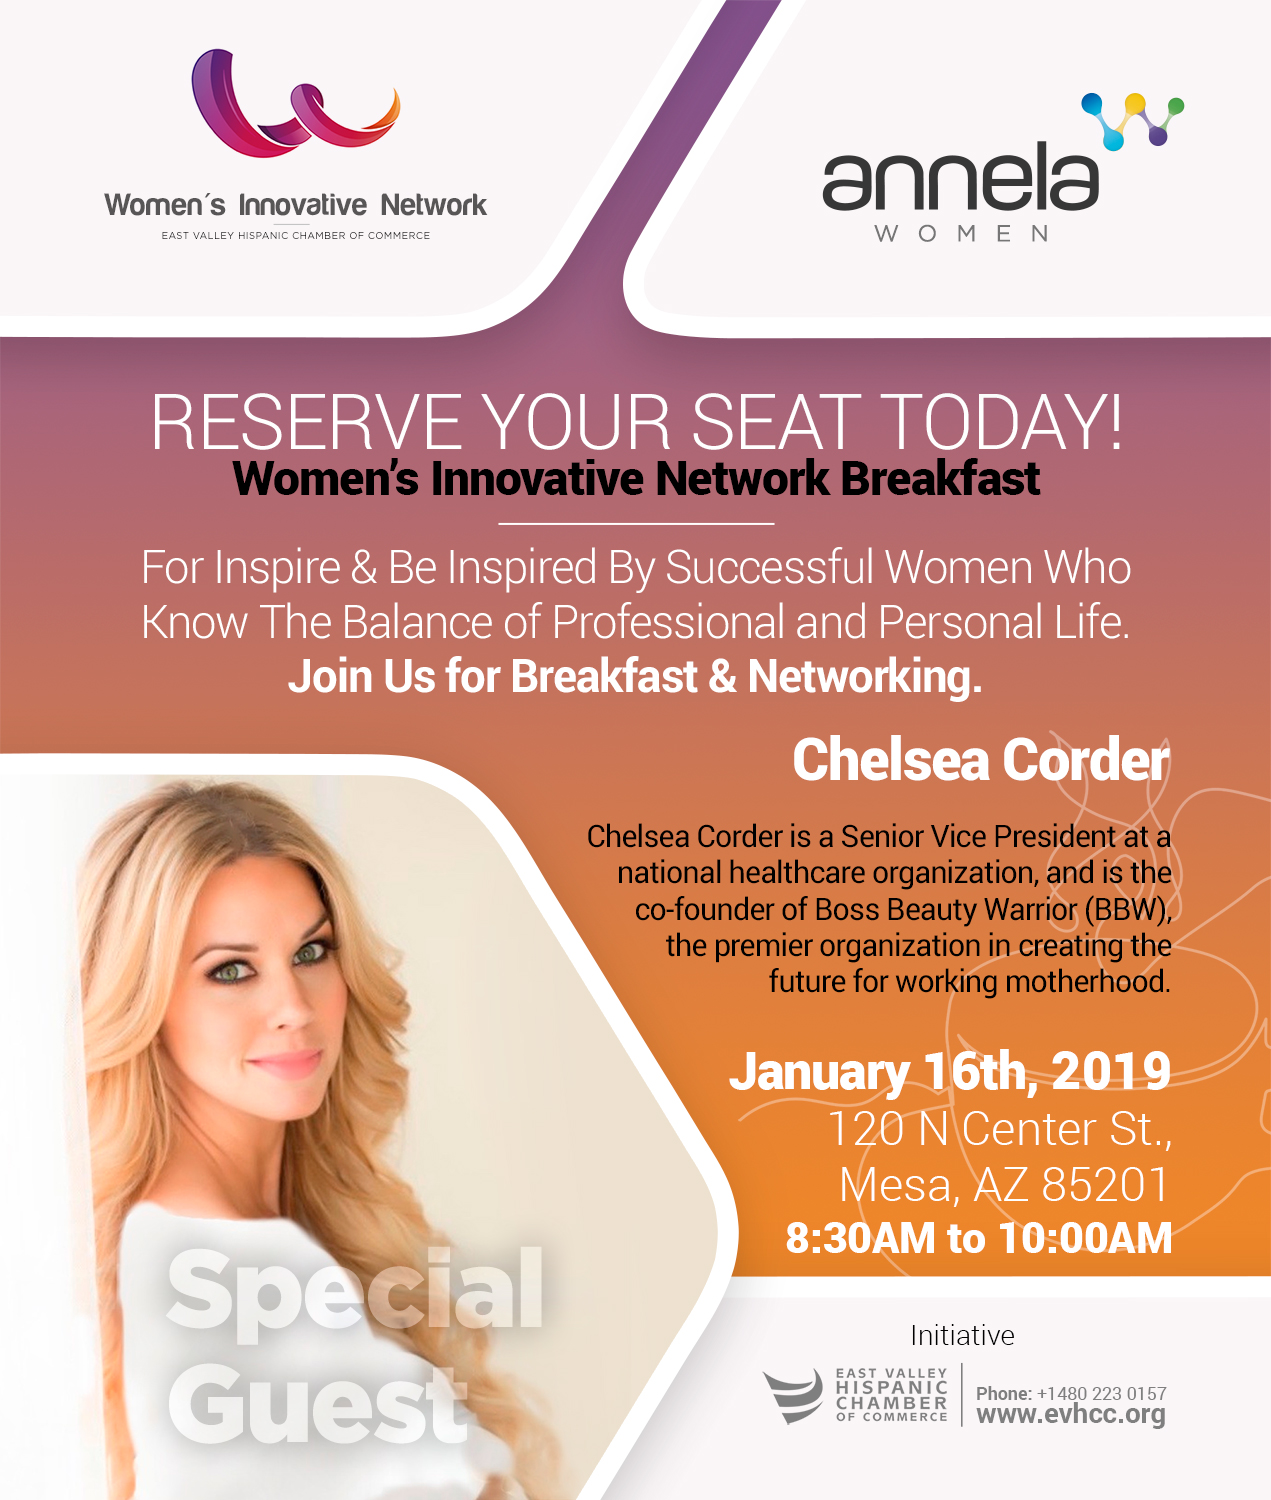 Women's Innovative Network Breakfast January 16, 2019